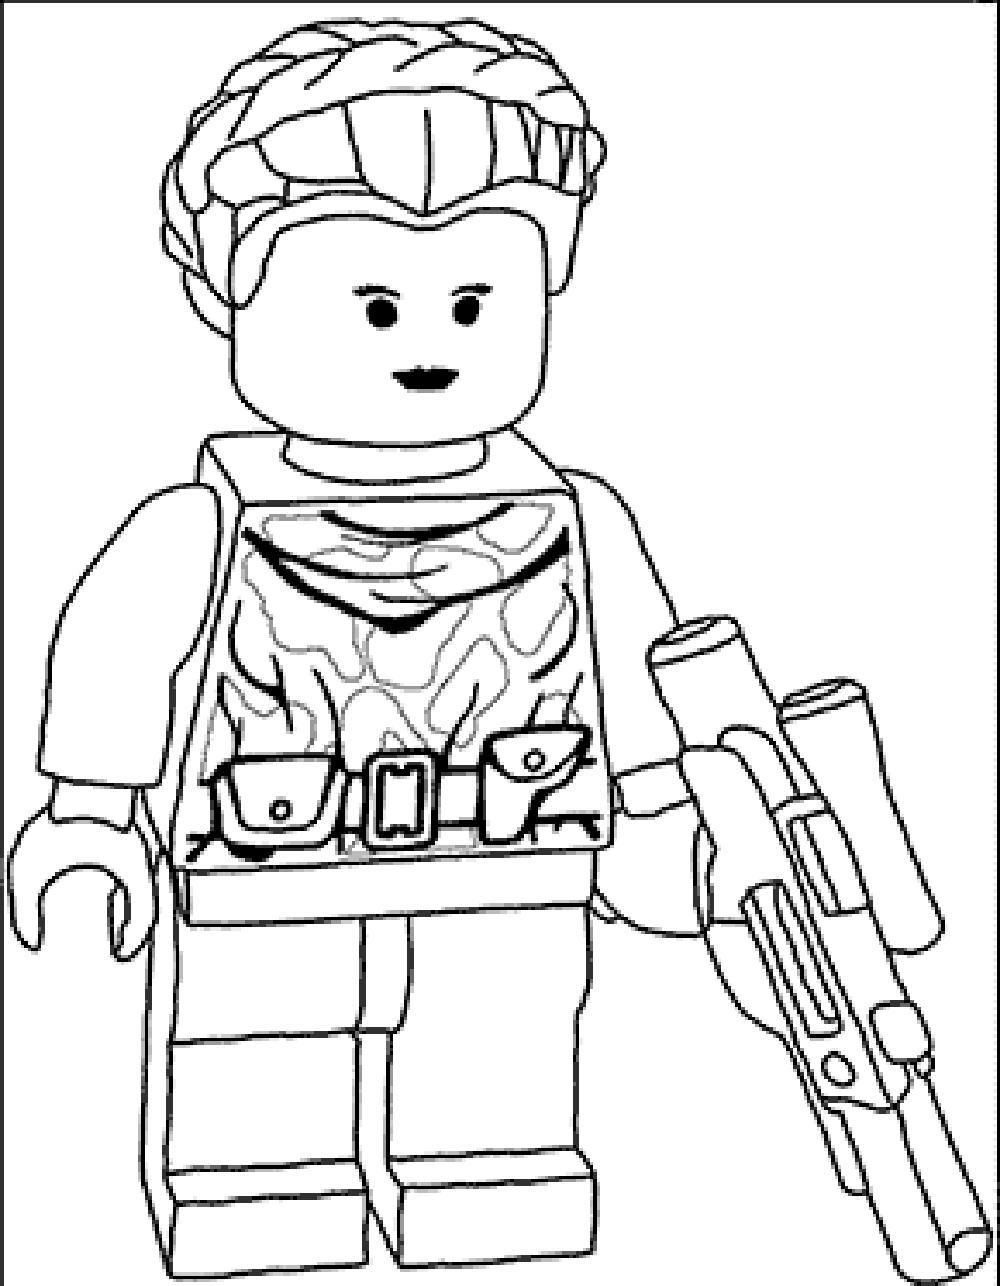 lego star wars coloring pages to print | LineArt: Star Wars ...